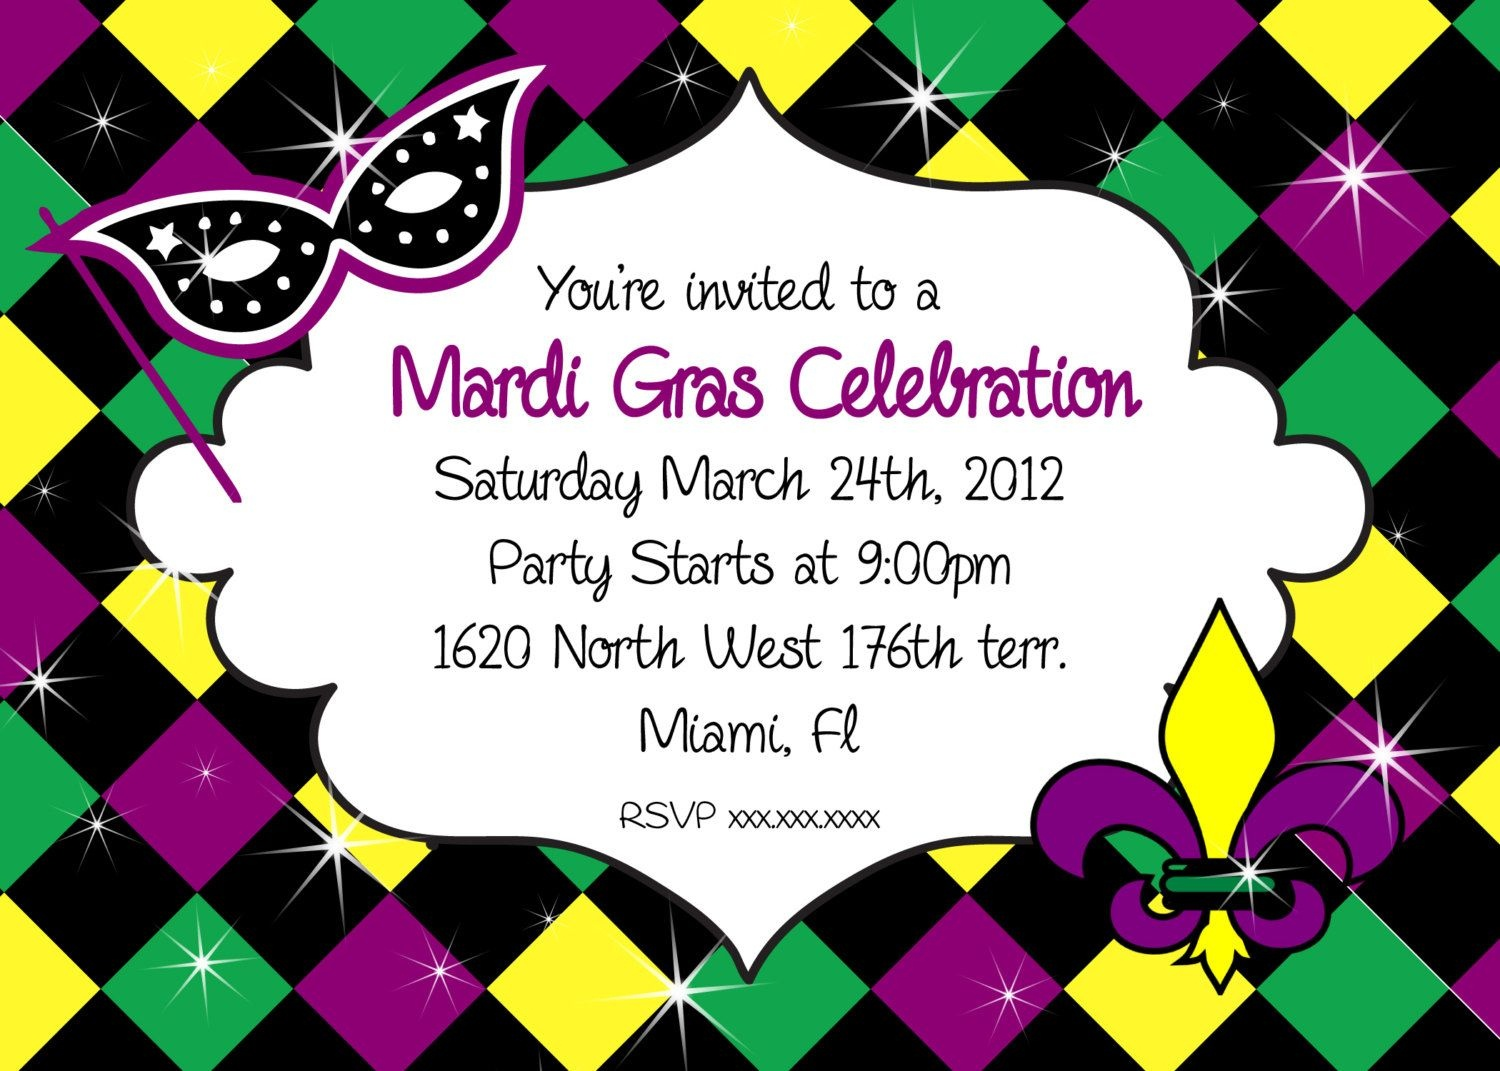 Mardi Gras Party Invitations - Cloudinvitation | Mardi Gras - Free Printable Mardi Gras Invitations